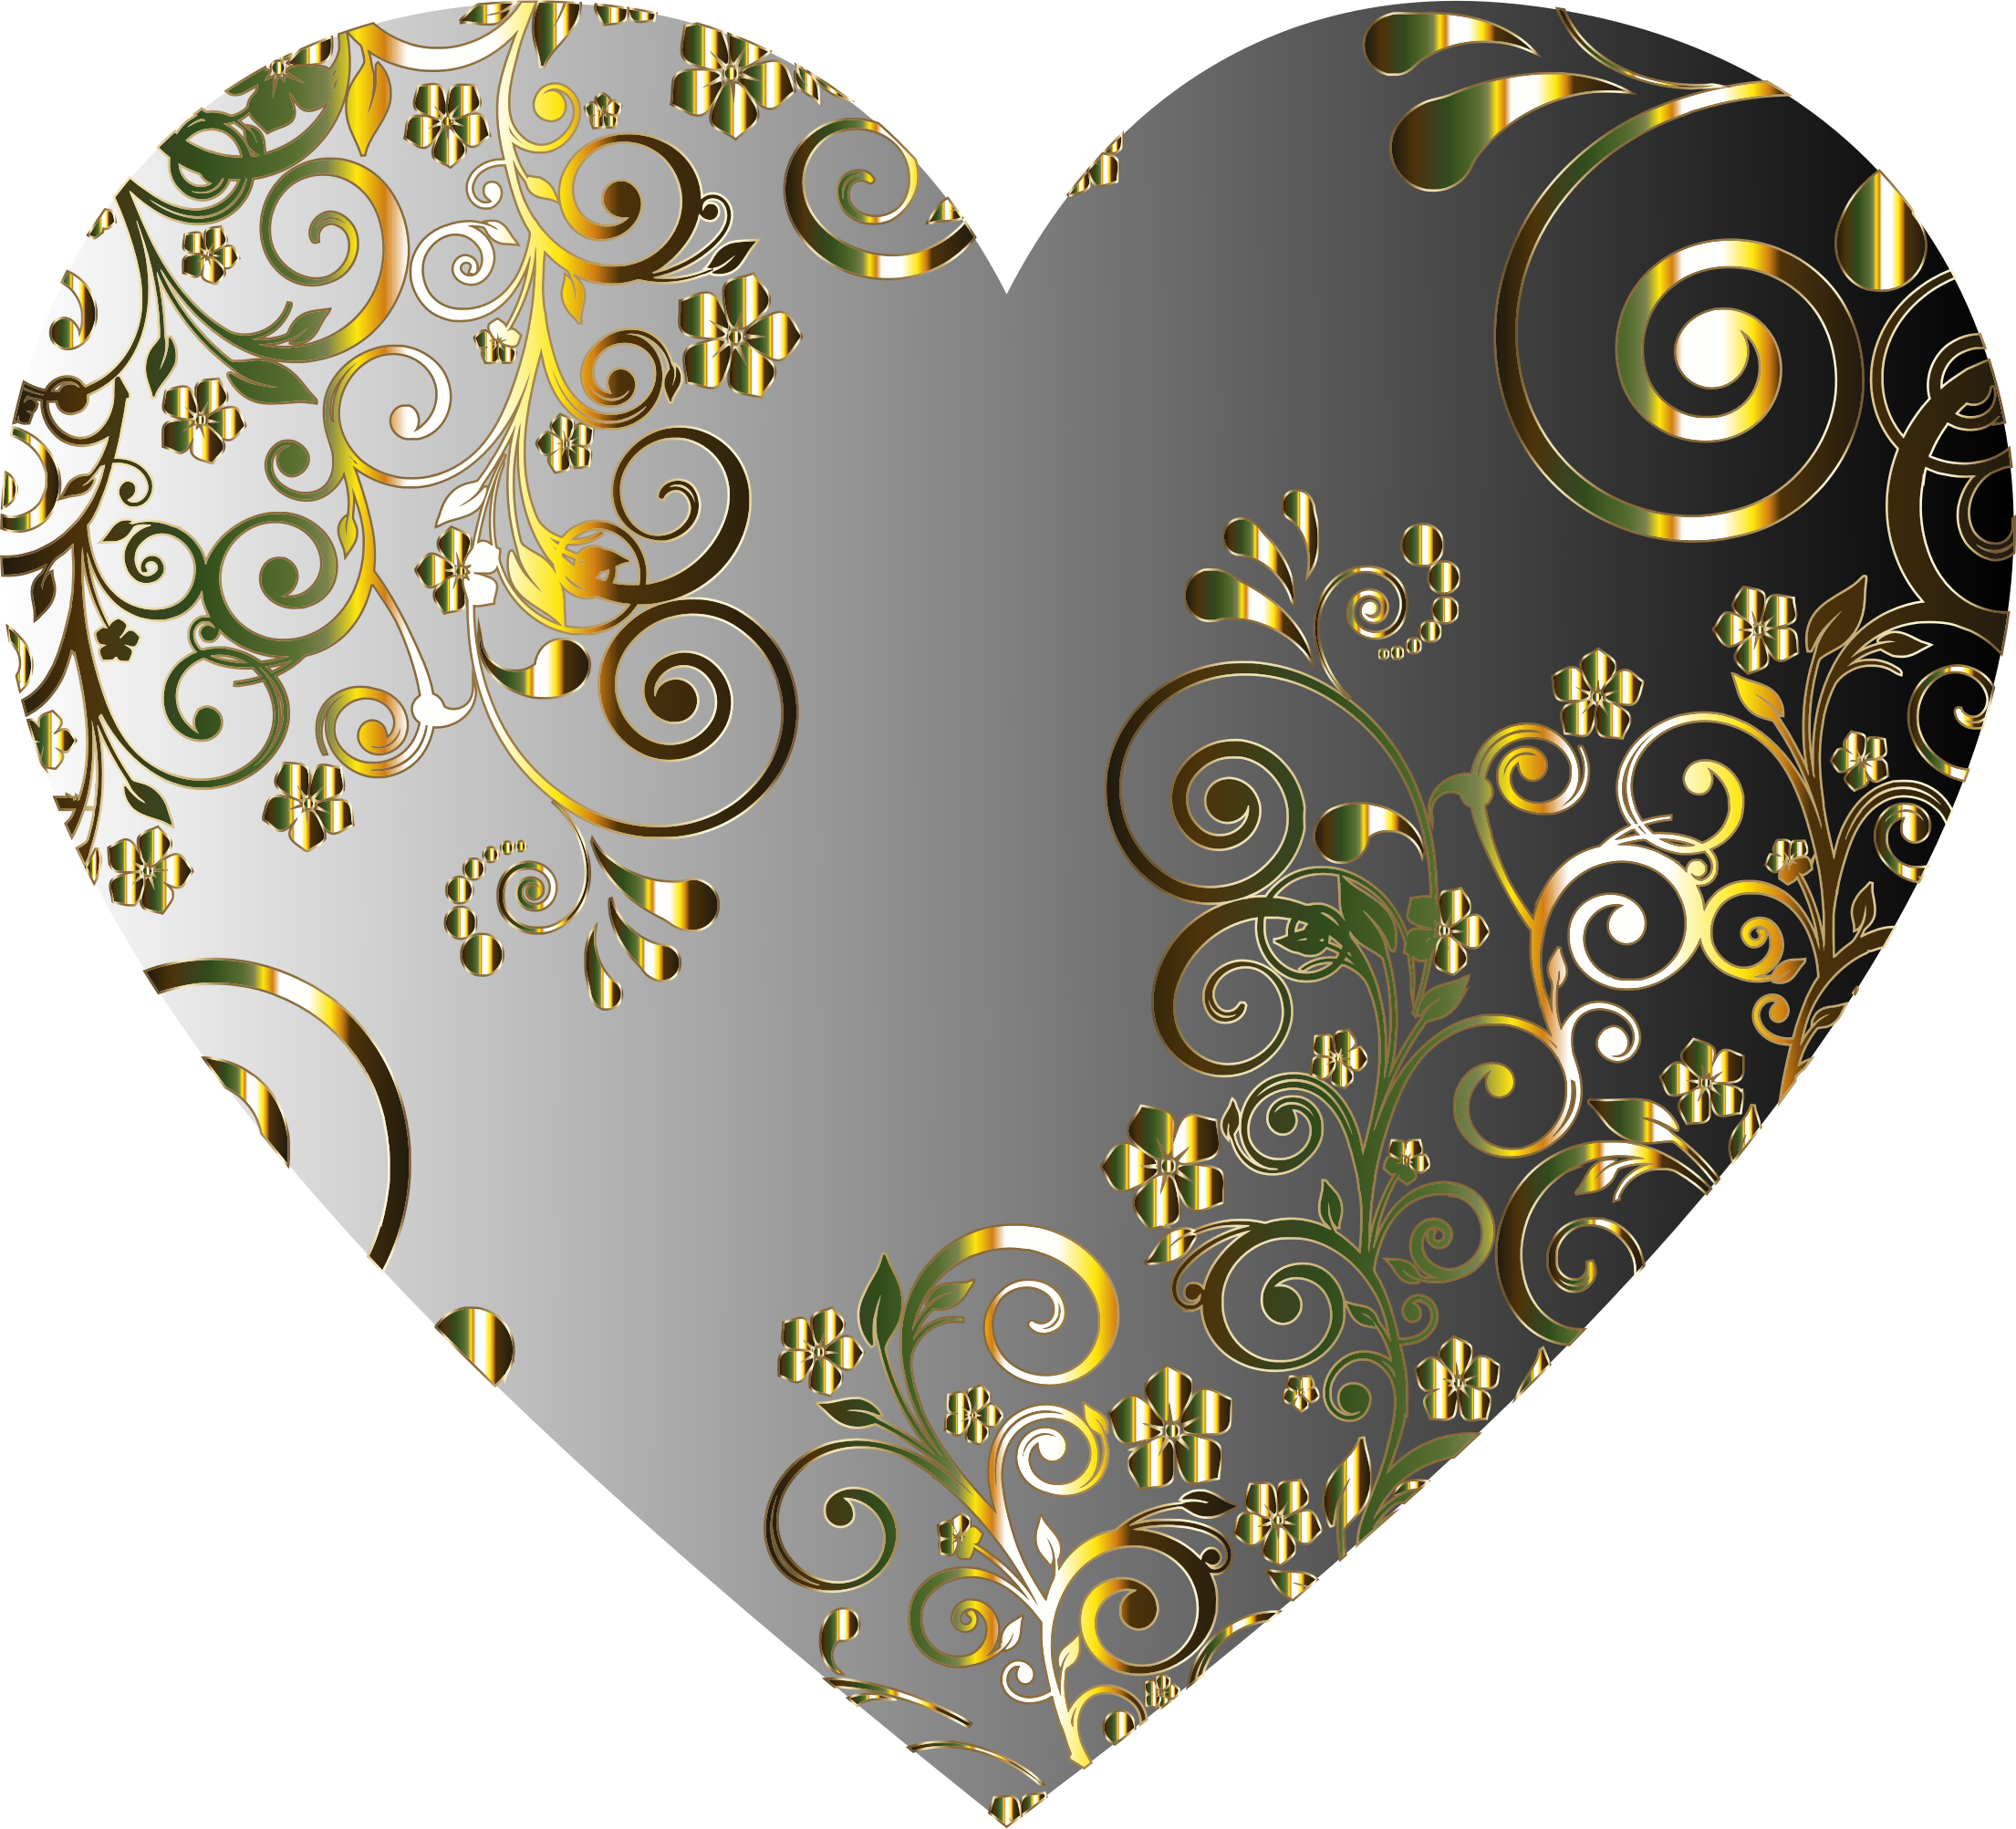 Prismatic Floral Flourish Heart 9 by GDJ